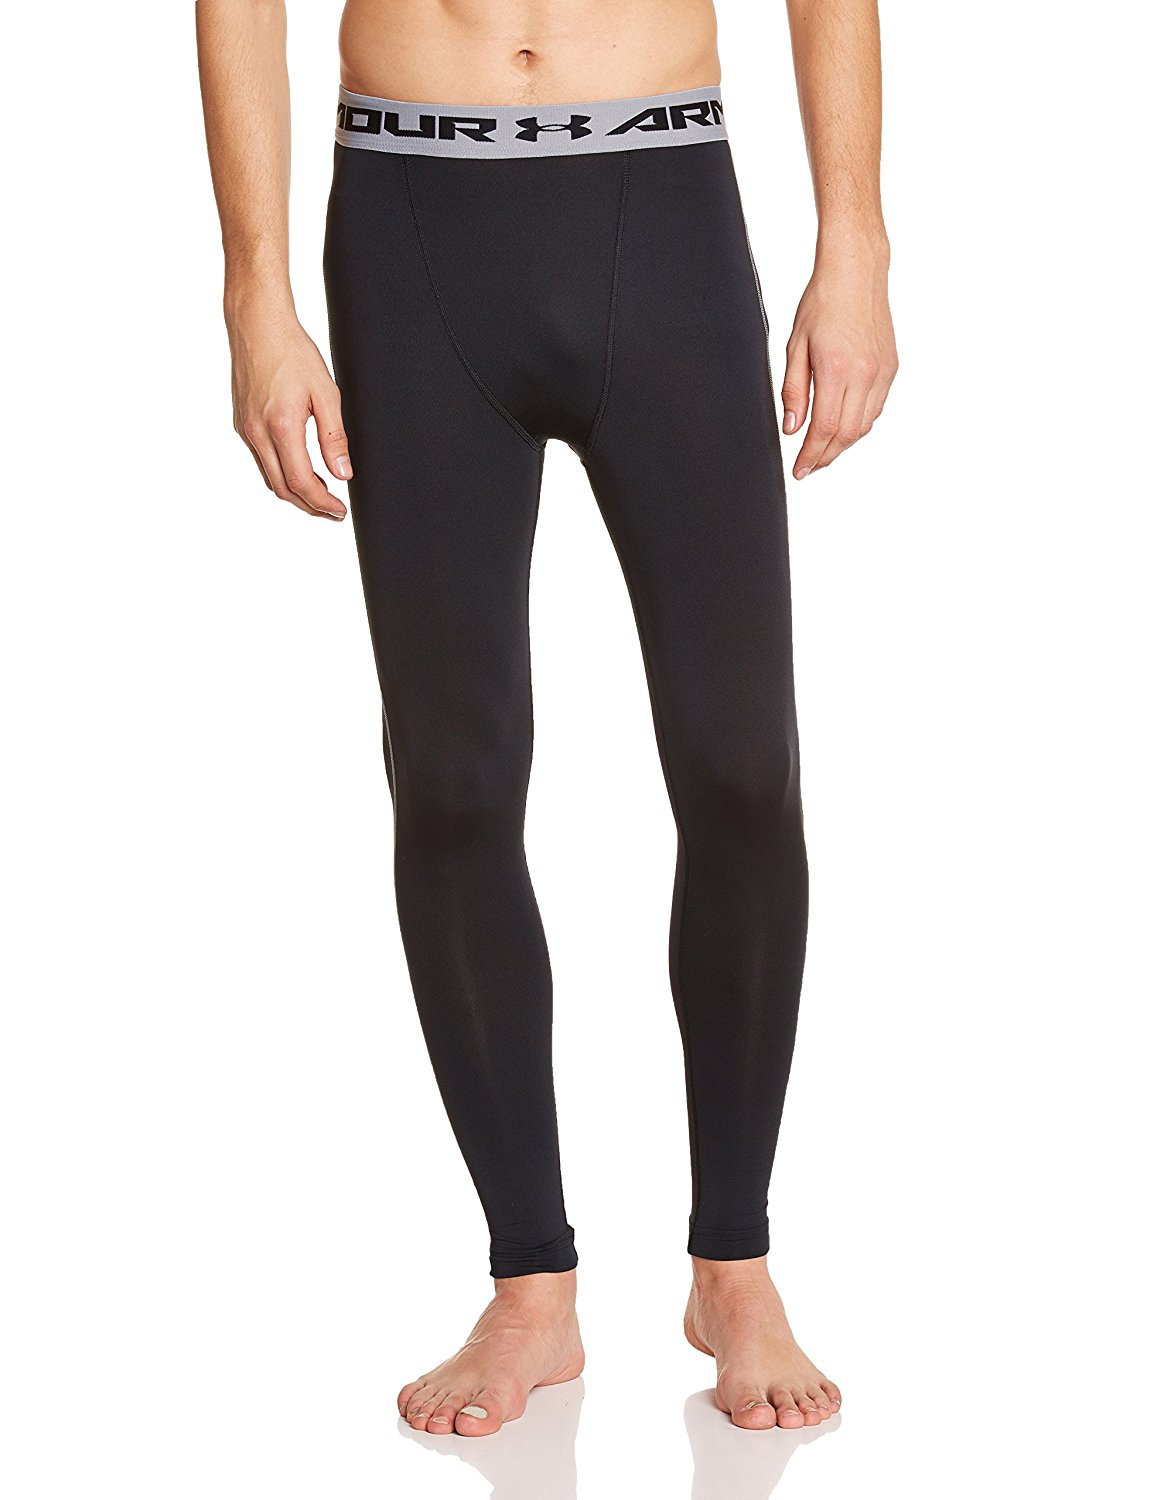 Under Armour Men's HeatGear Armour Compression Leggings – Available in 10 Sizes & 15 Colors